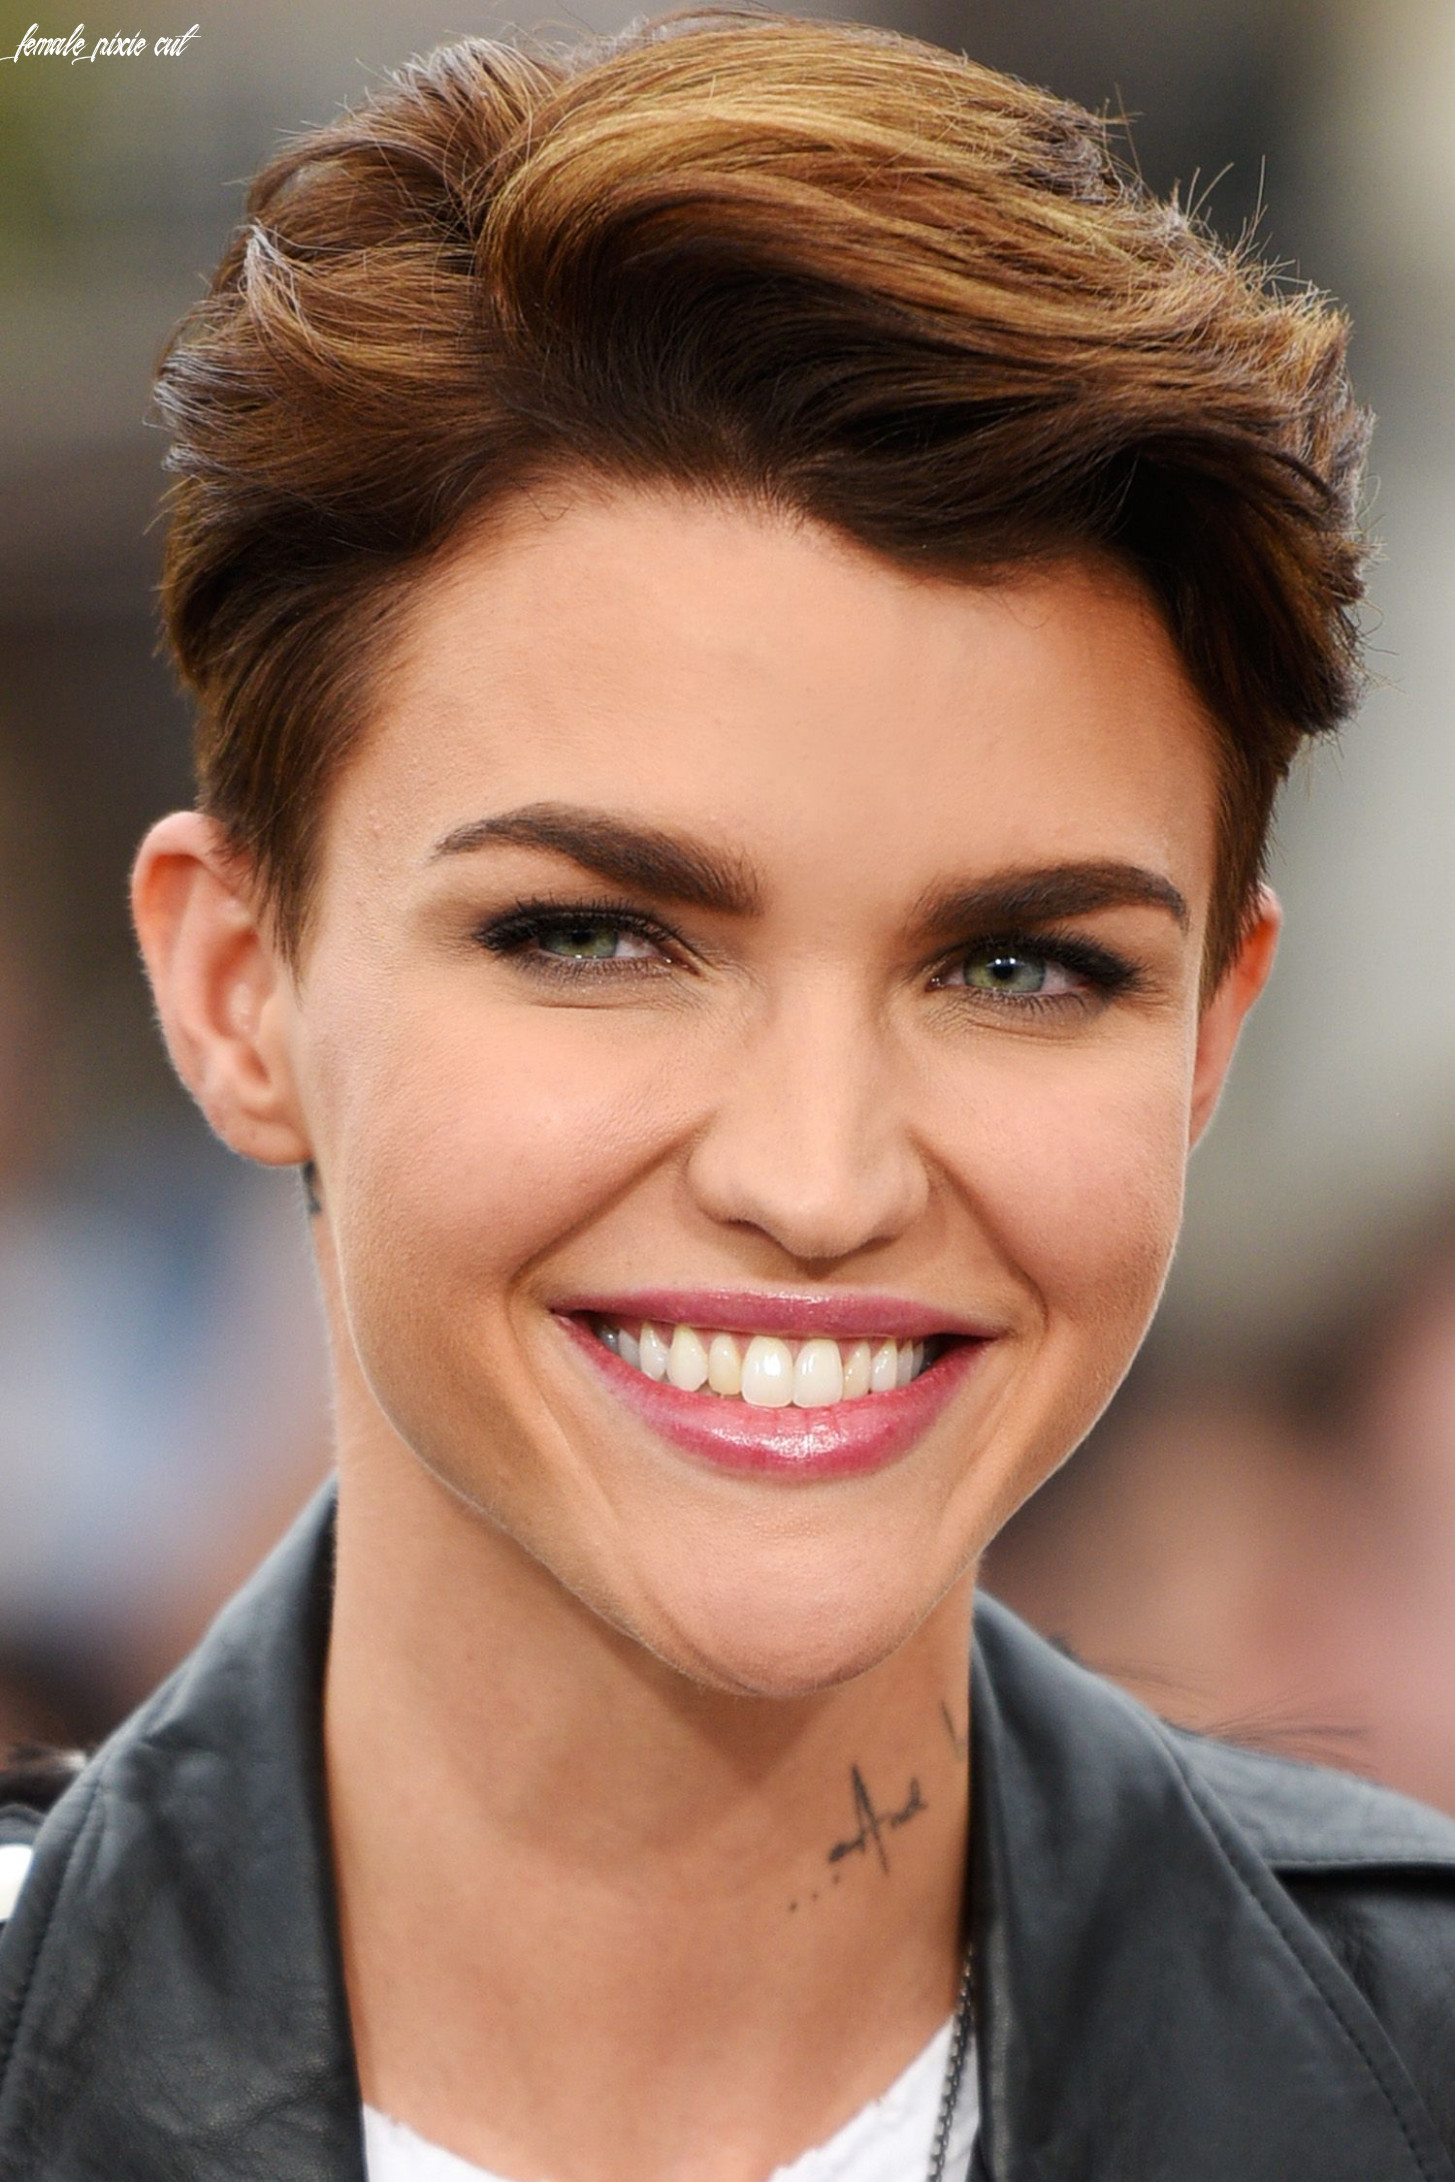 12+ Pixie Cuts We Love for 12 - Short Pixie Hairstyles from ...